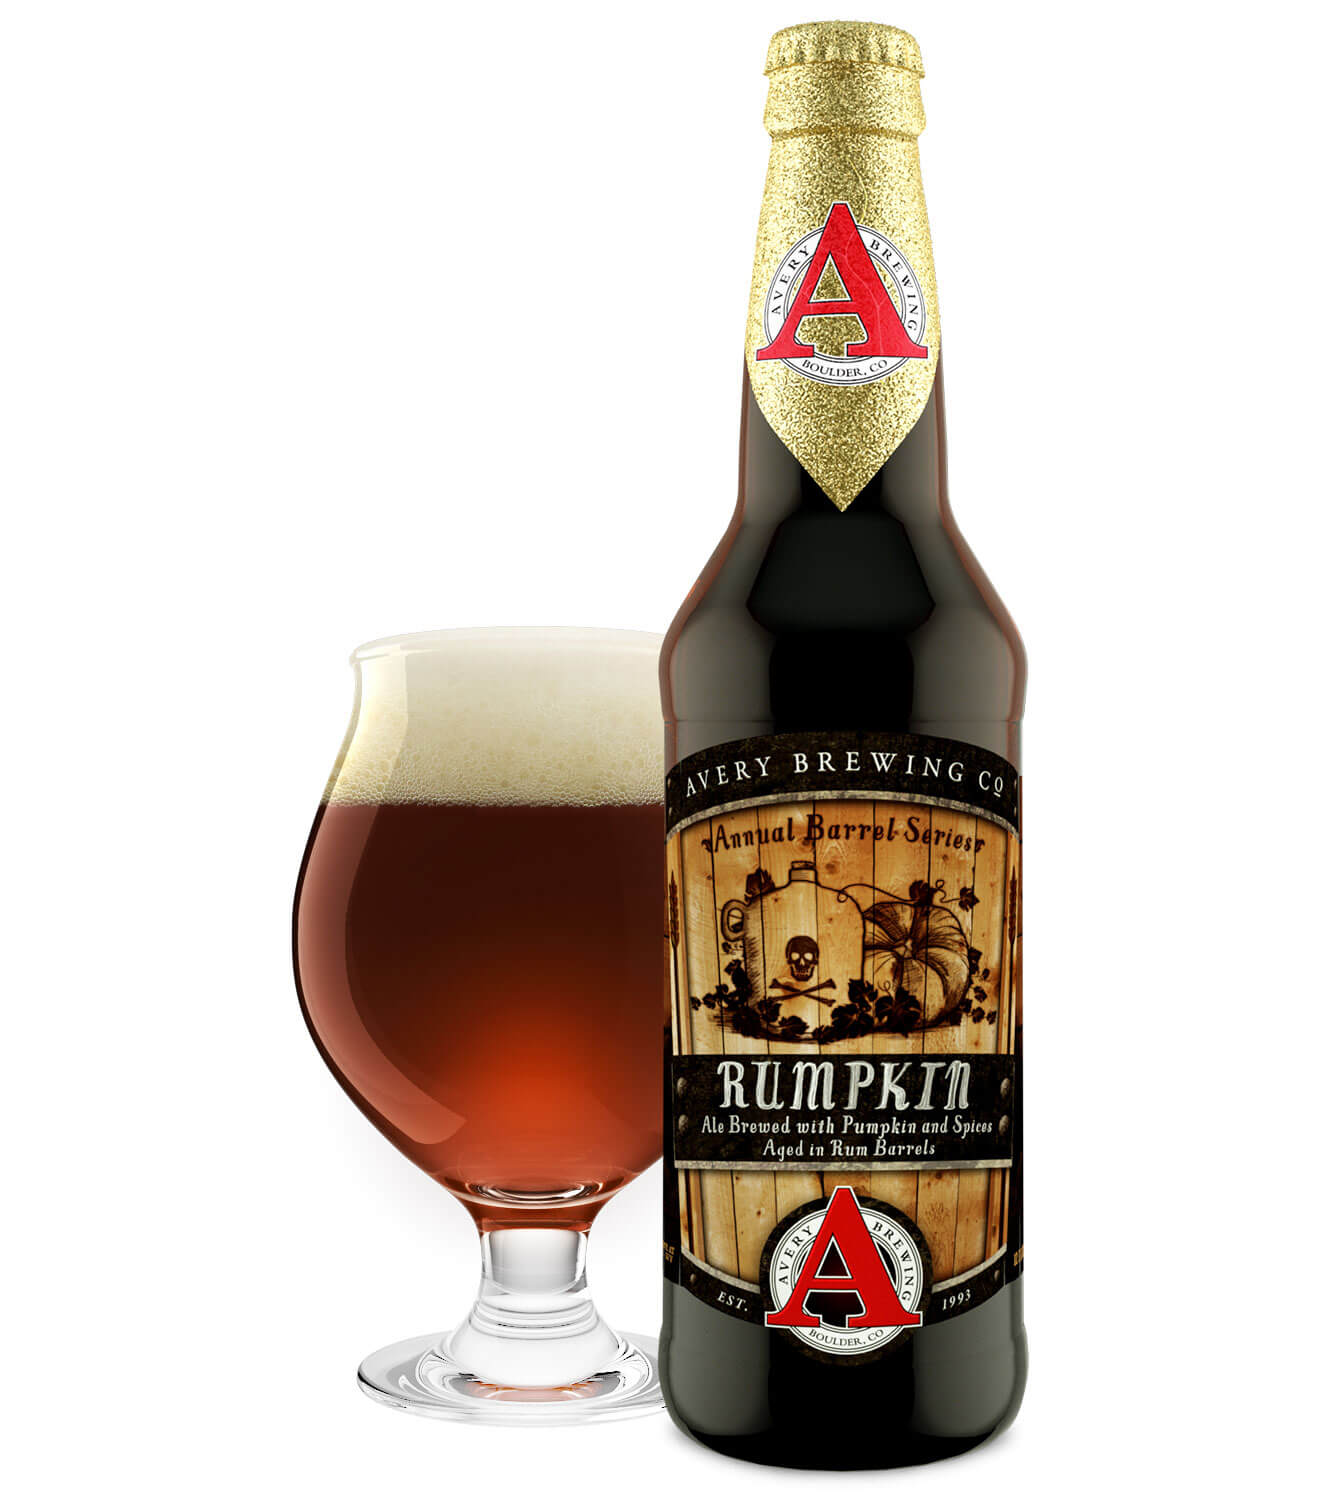 Avery Brewing Rumpkin Rum Barrel-Aged Pumpkin Ale